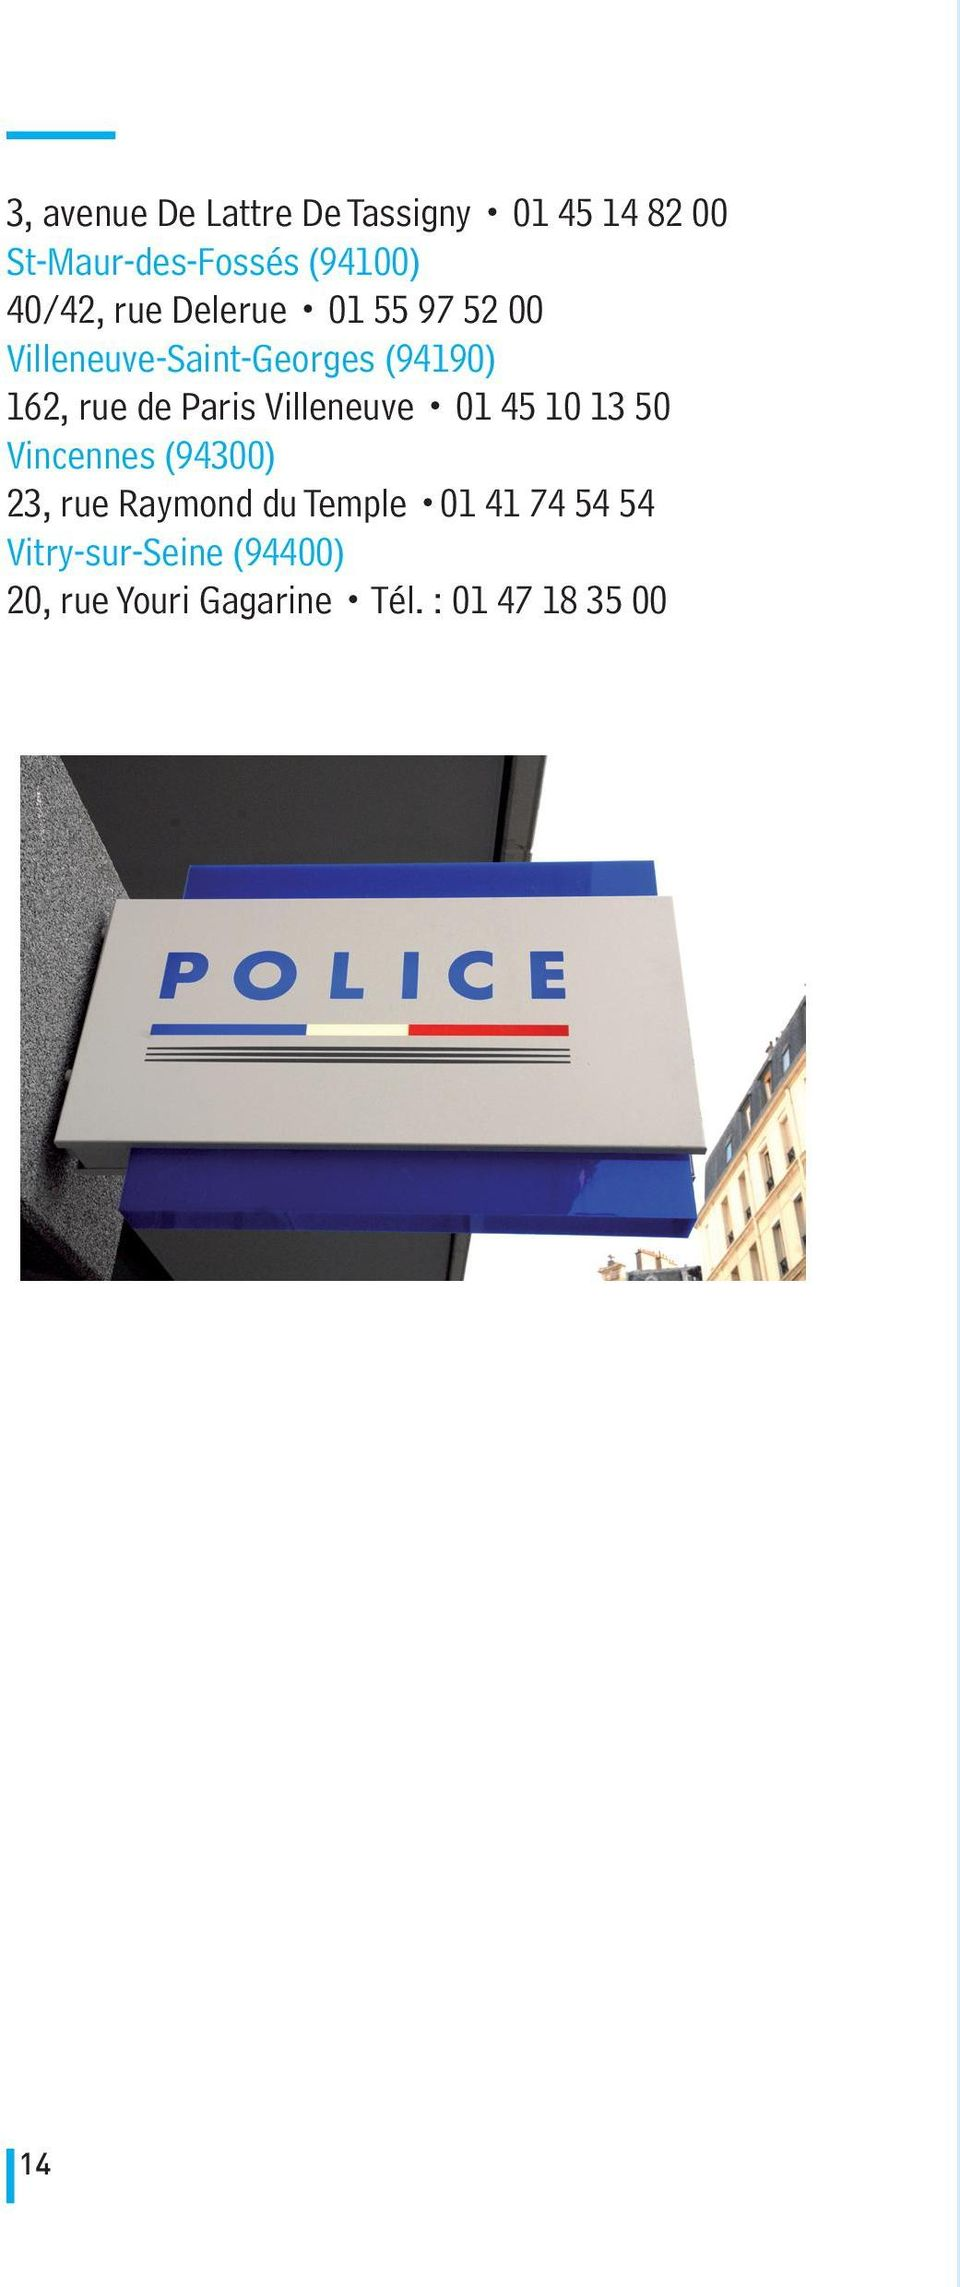 Paris Villeneuve 01 45 10 13 50 Vincennes (94300) 23, rue Raymond du Temple 01